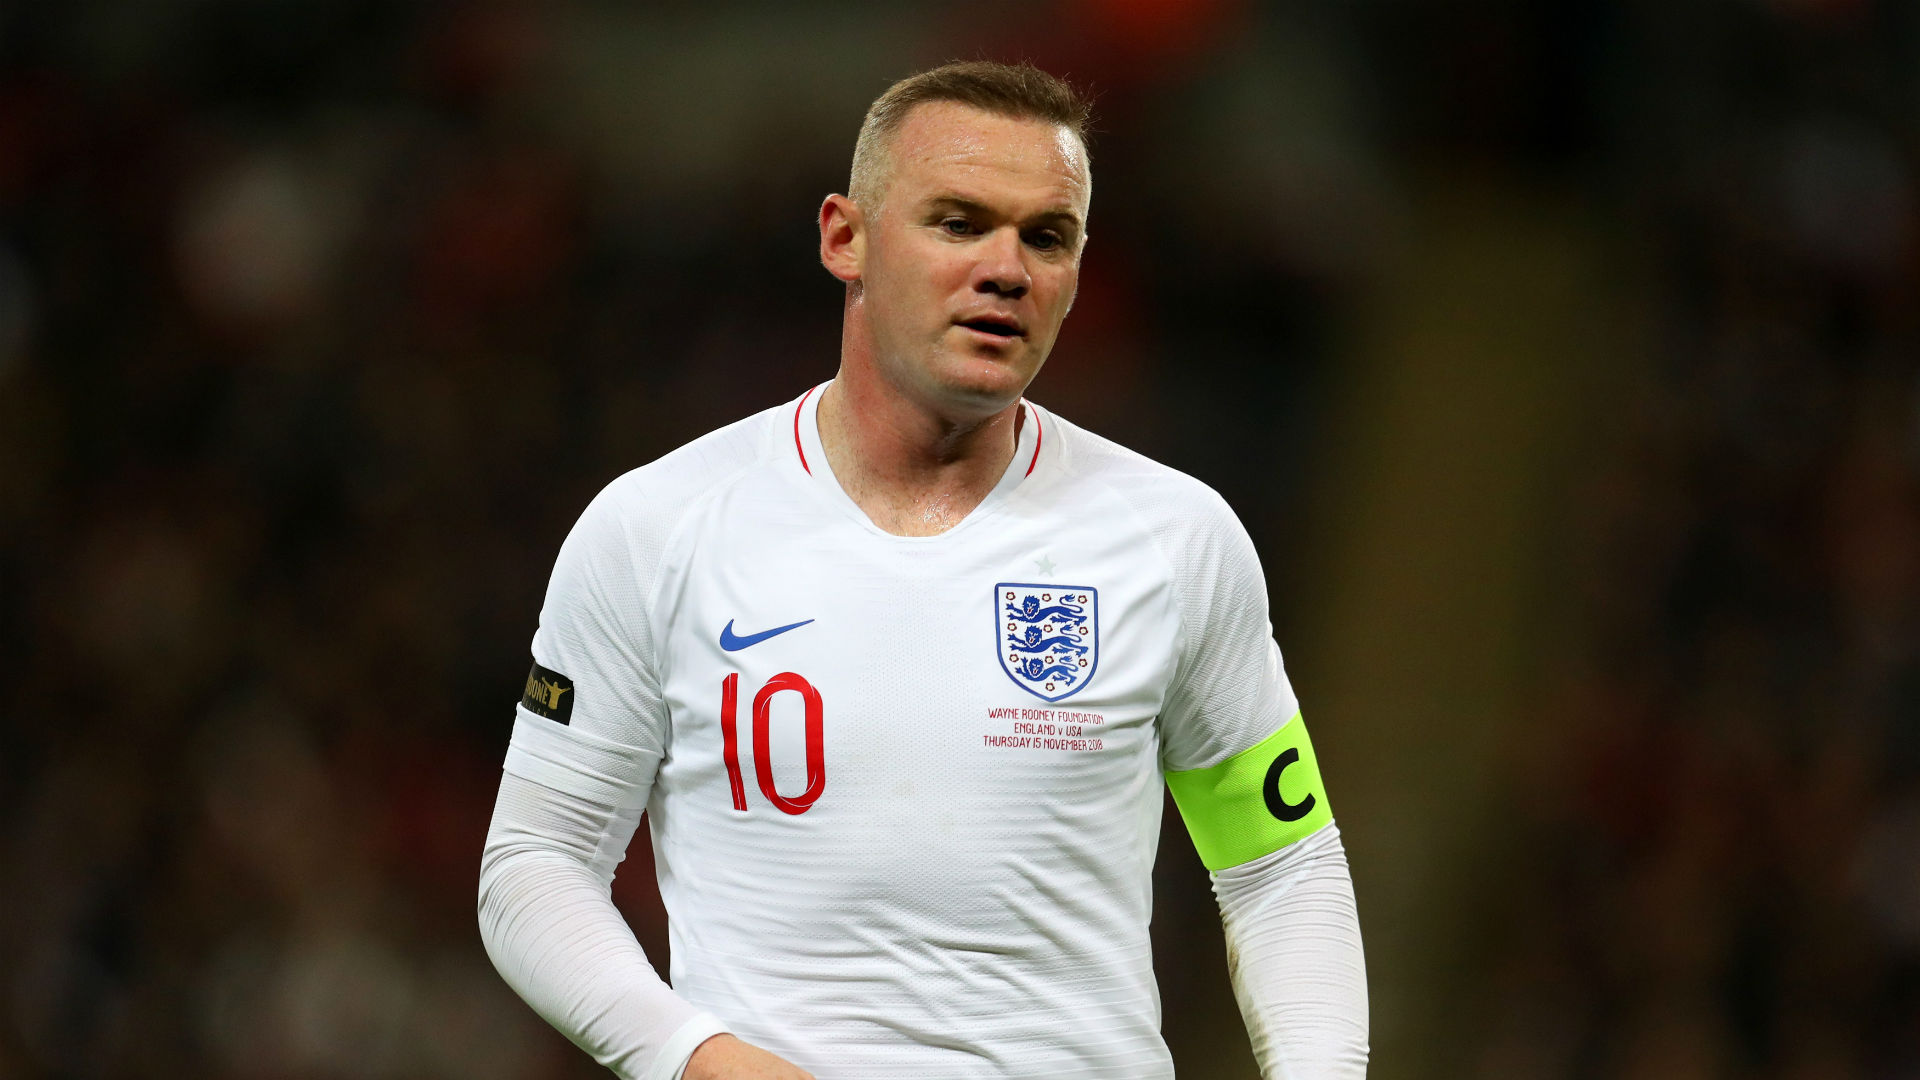 Rooney arrested on public intoxication charge